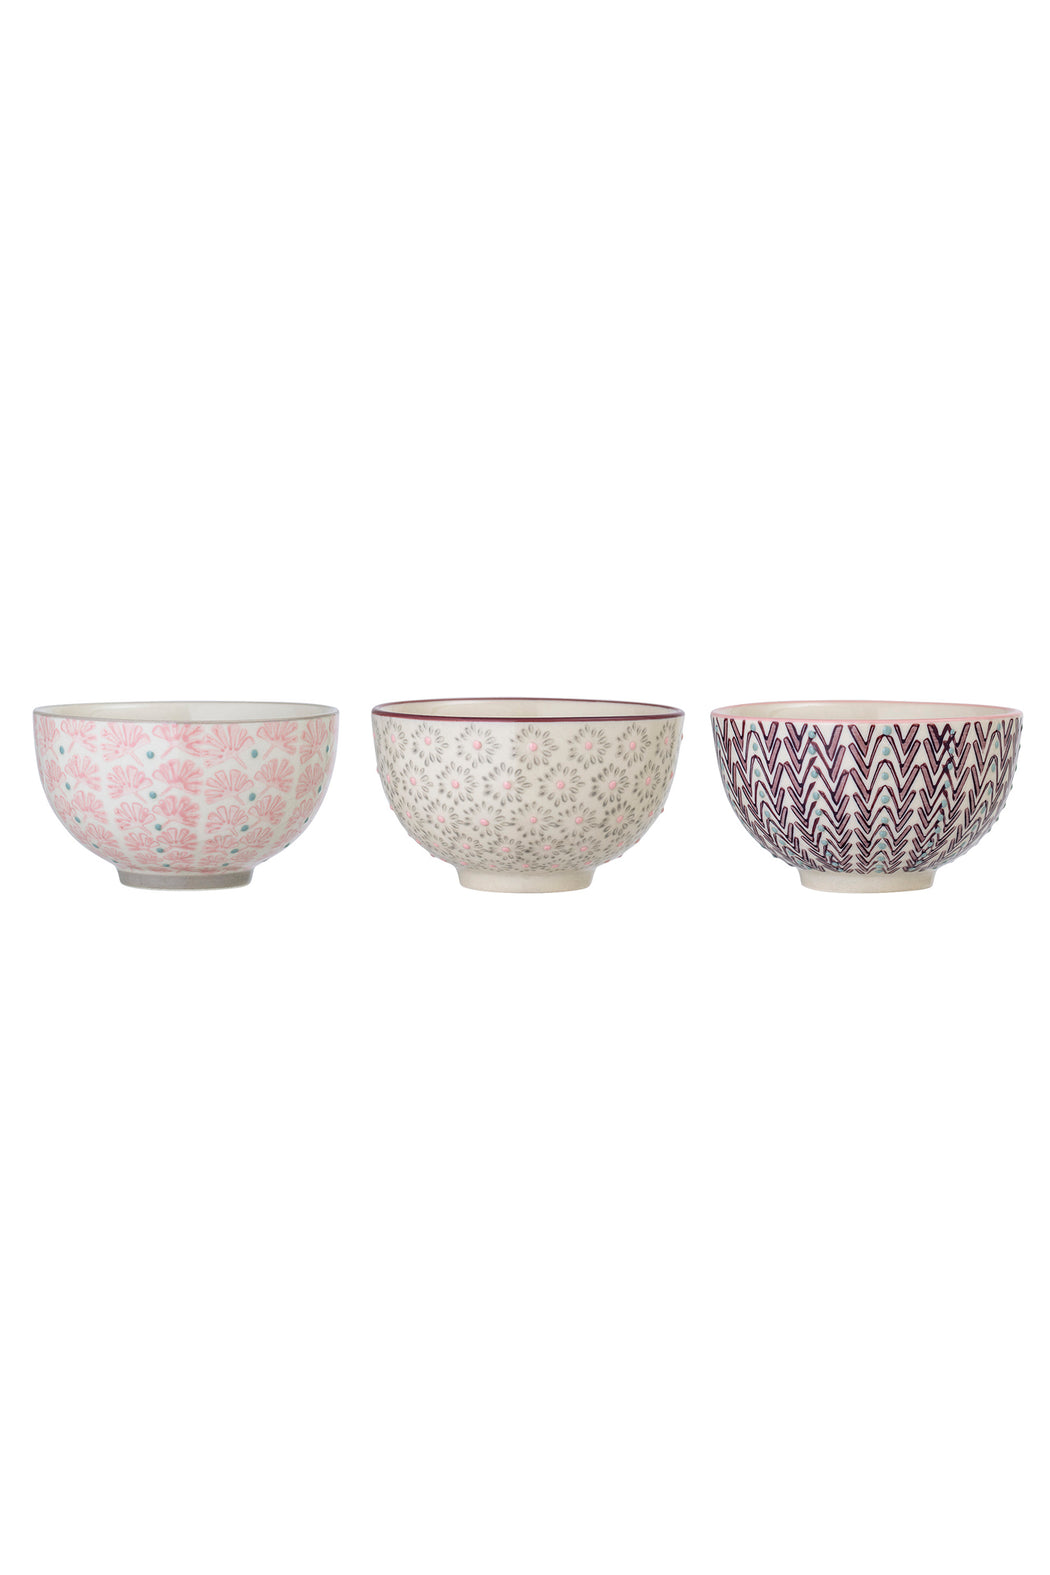 Maya Rice Bowl, Serveware, Bloomingville - 3LittlePicks